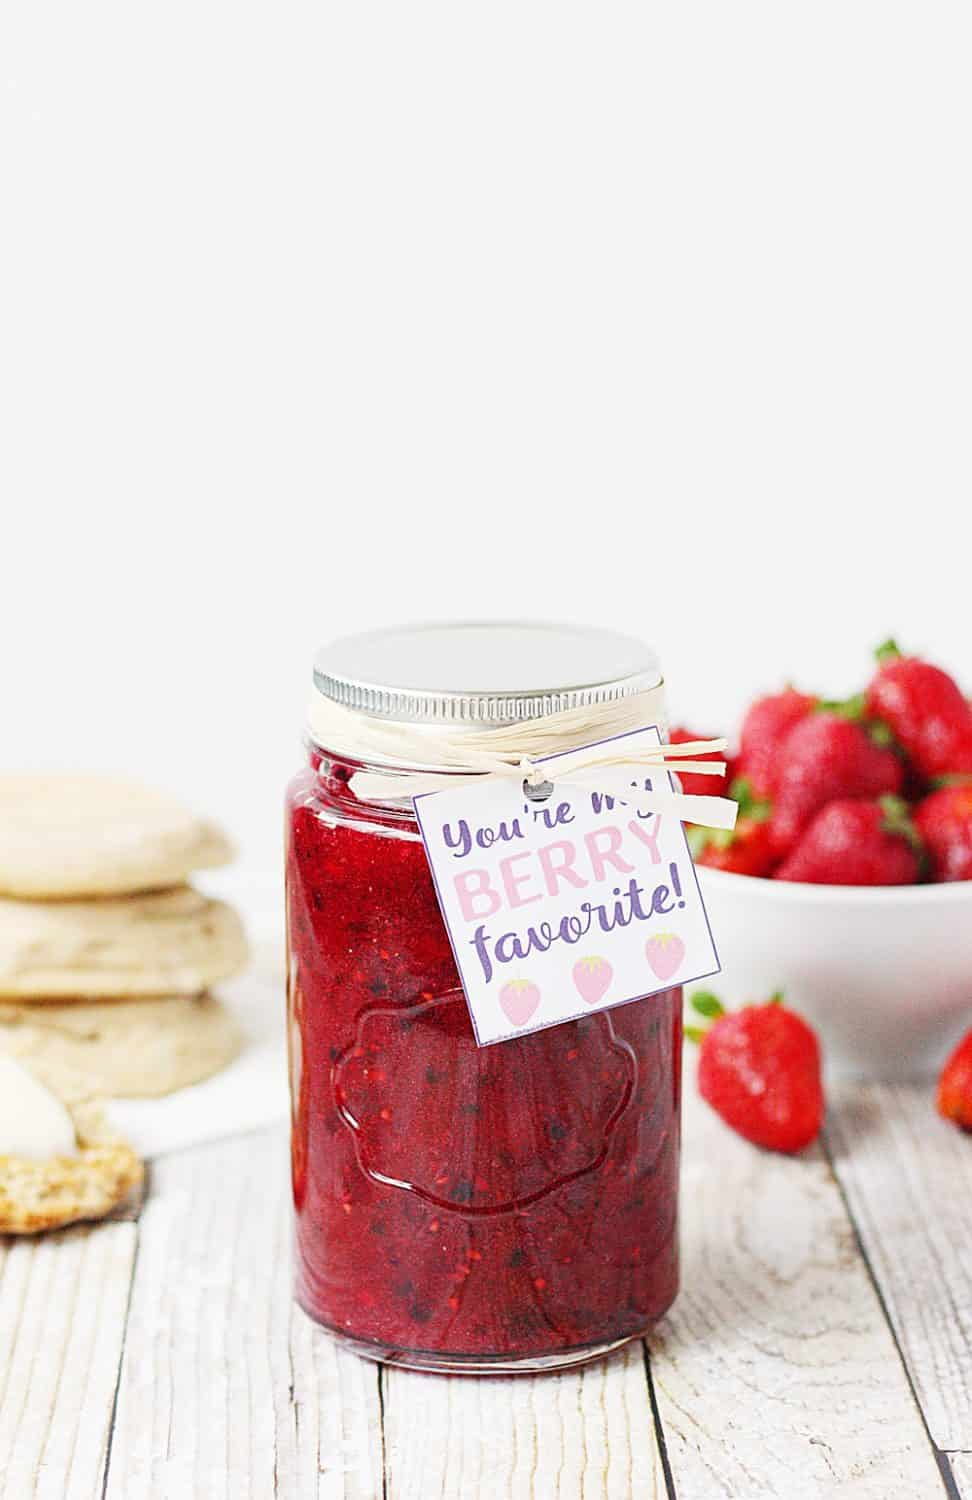 Easy Mixed Berry Freezer Jam -- This easy mixed berry freezer jam recipe features the perfect combination of strawberries and blackberries and is a great way to enjoy summer berries! Don't forget the free printable gift tag when sharing this easy freezer jam with friends and family! #jam #freezerjam #berry #strawberry #blackberry #jelly #easyrecipe #printable #gifttag #freeprintable